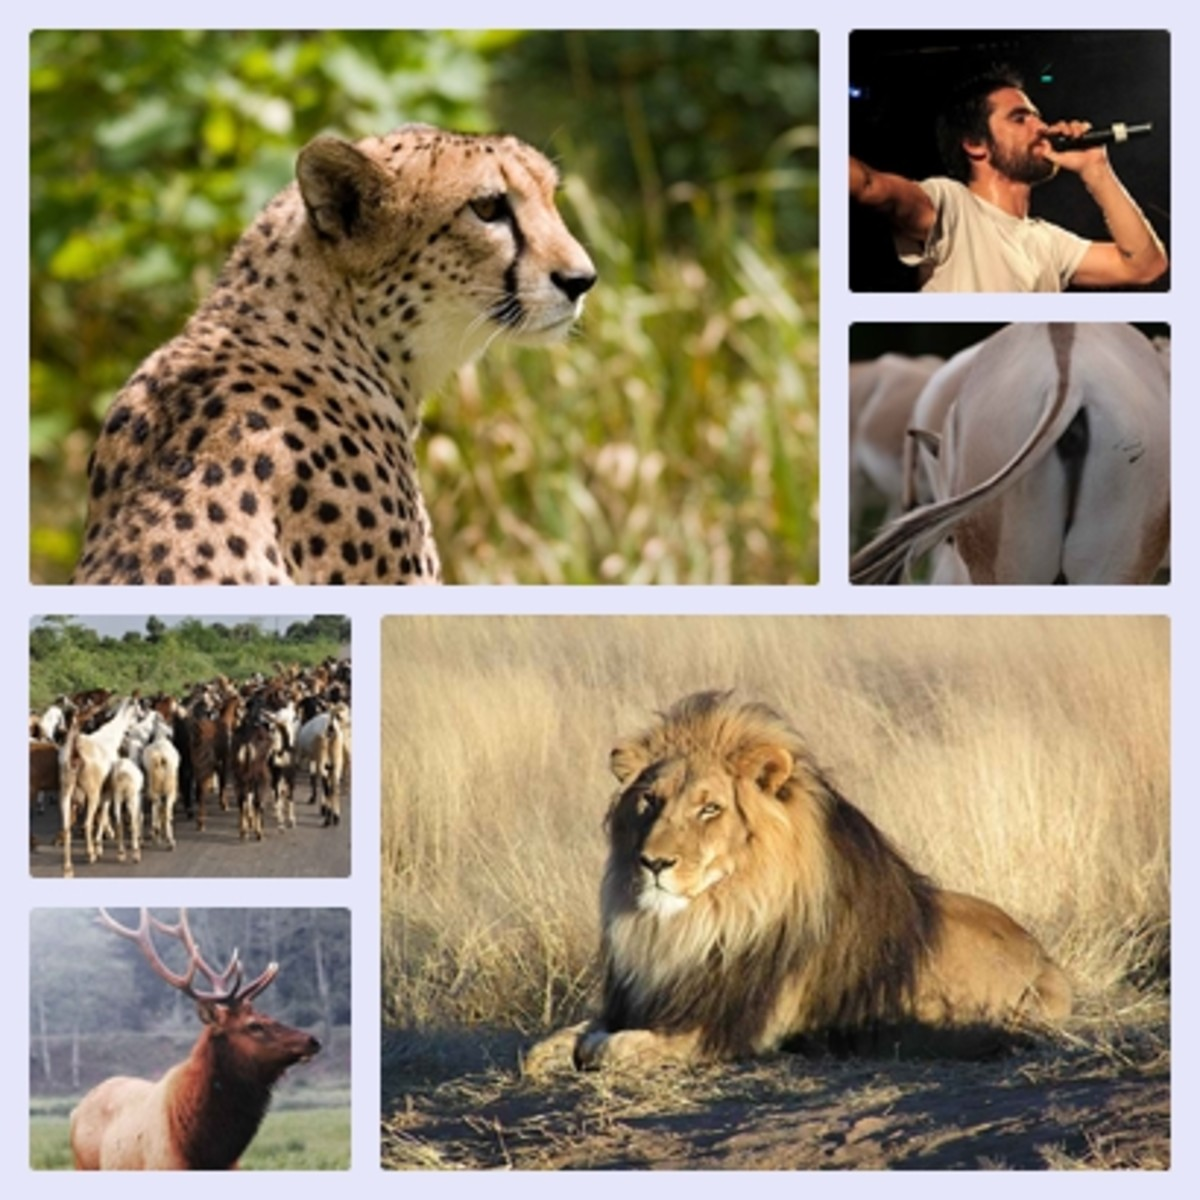 Facts about Mammals: It's Characteristics and Habitats